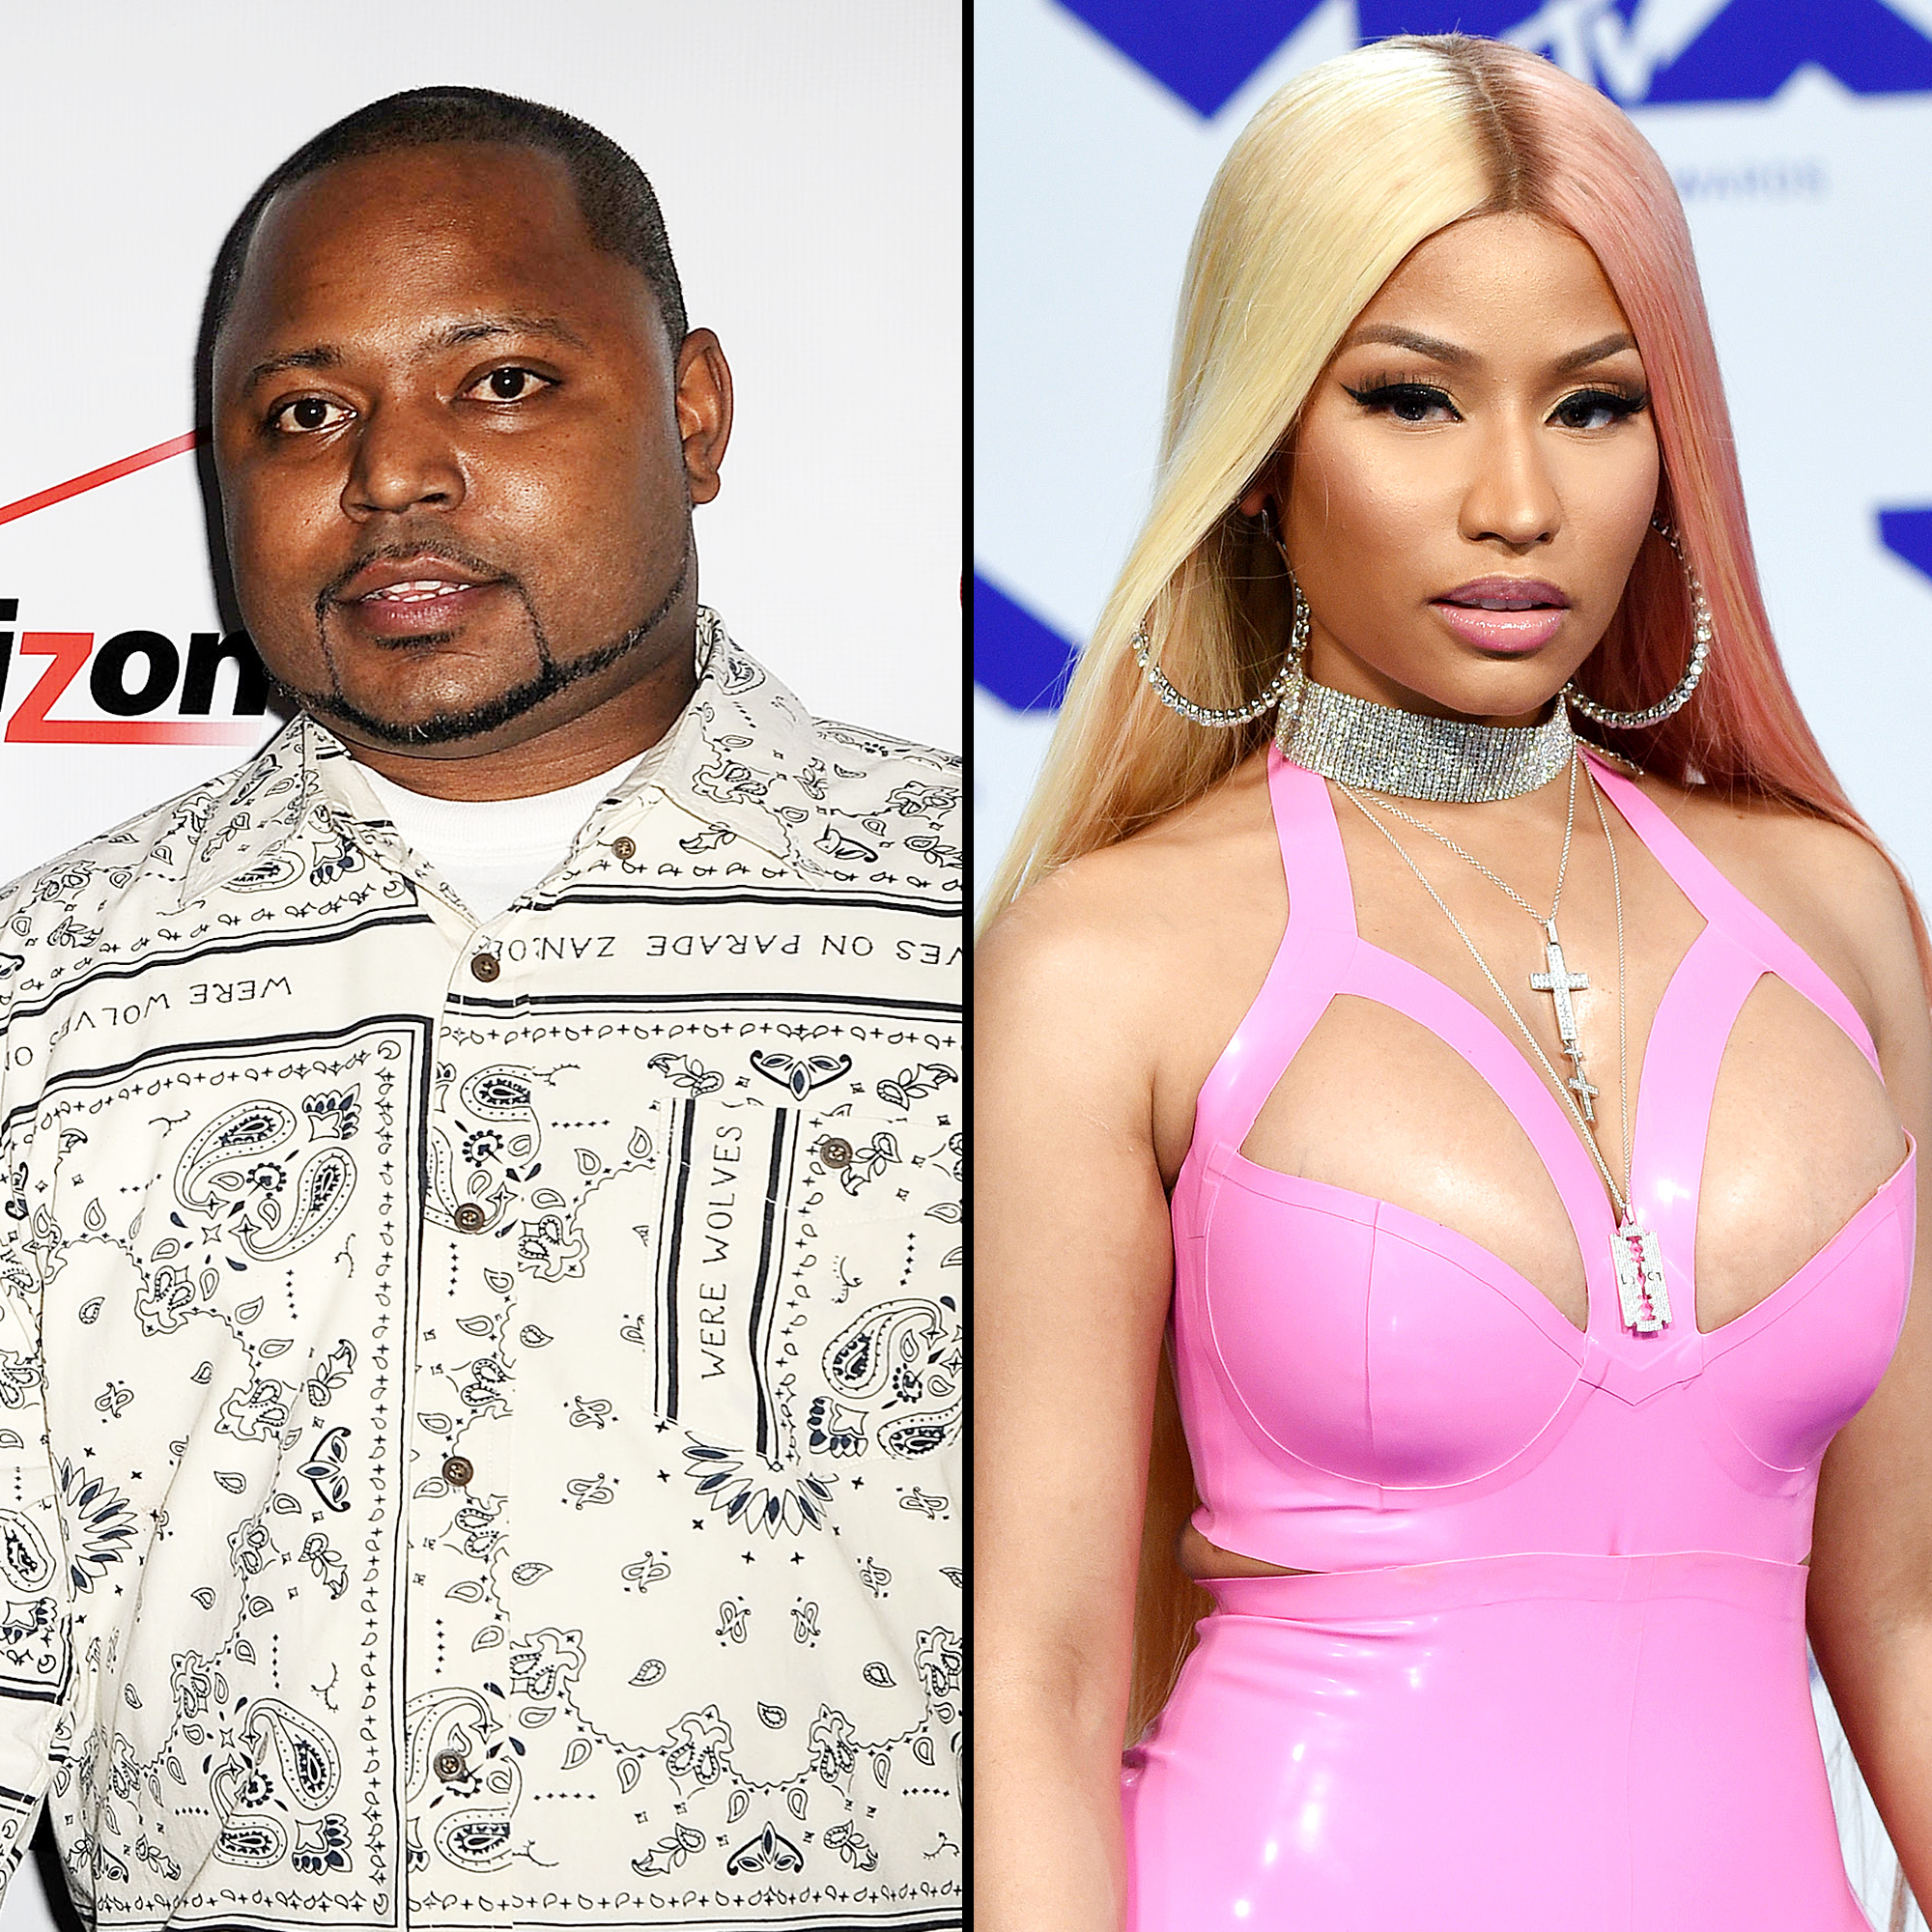 Nicki Minaj's Brother Convicted Of Child Sexual Assault